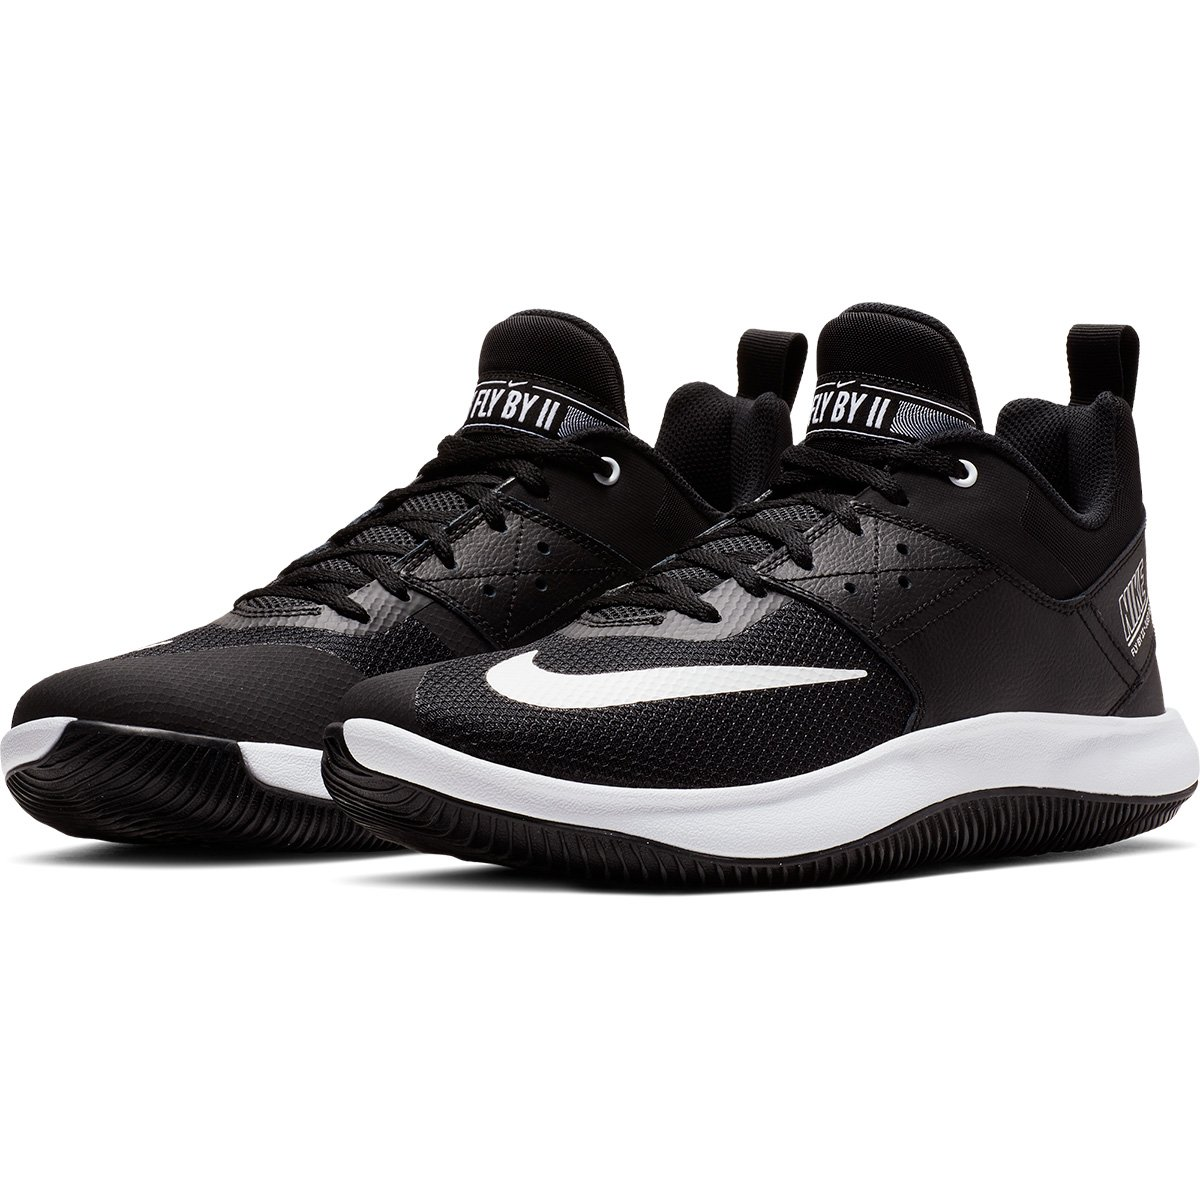 8ff828c8b2c Tênis Nike Fly By Low II Masculino - Compre Agora